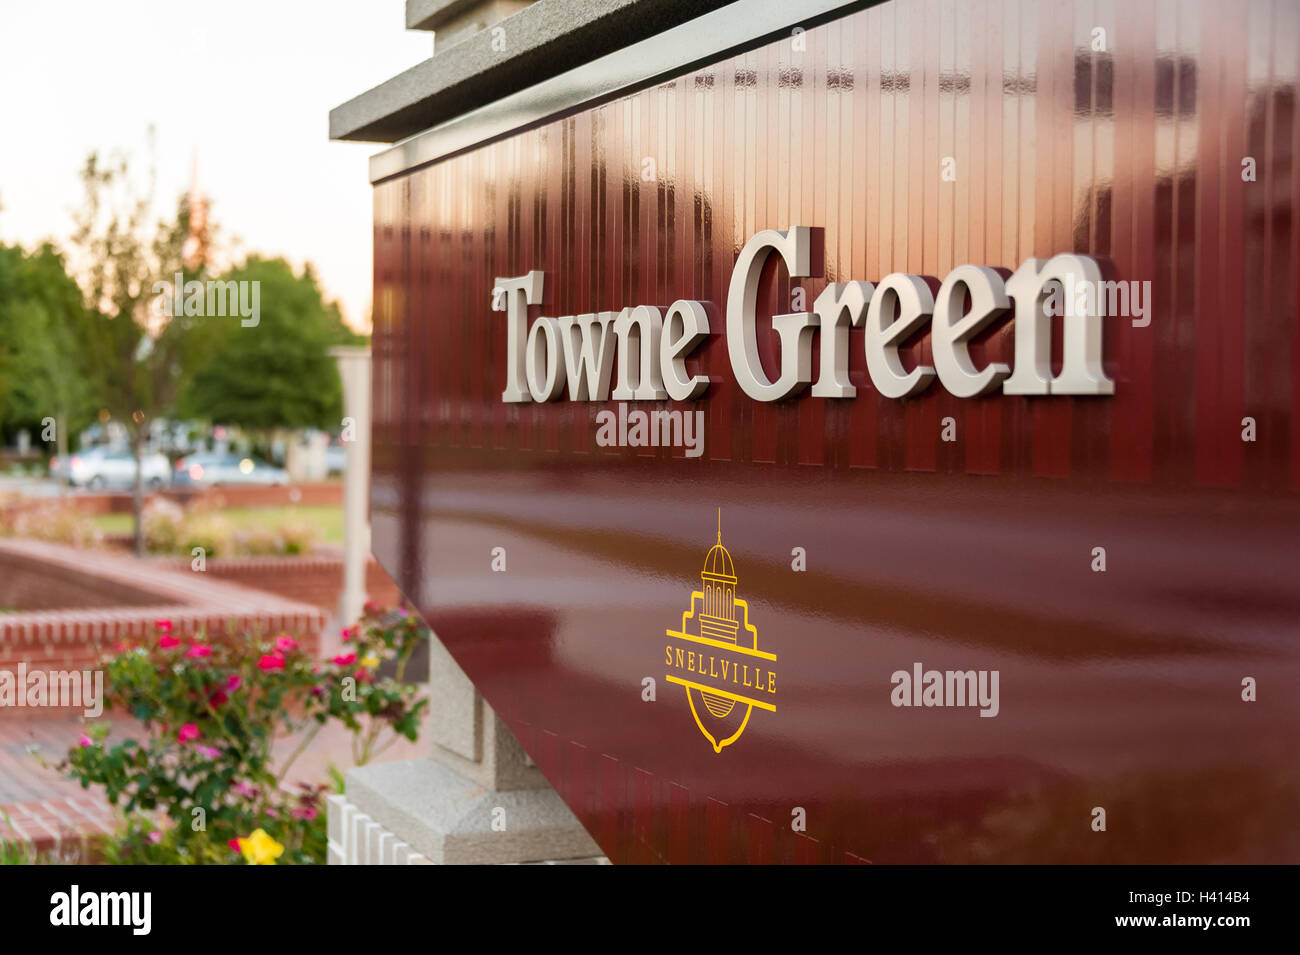 Towne Green signage in front of the City Hall building in Snellville, Georgia, a suburban community east of Atlanta. Stock Photo